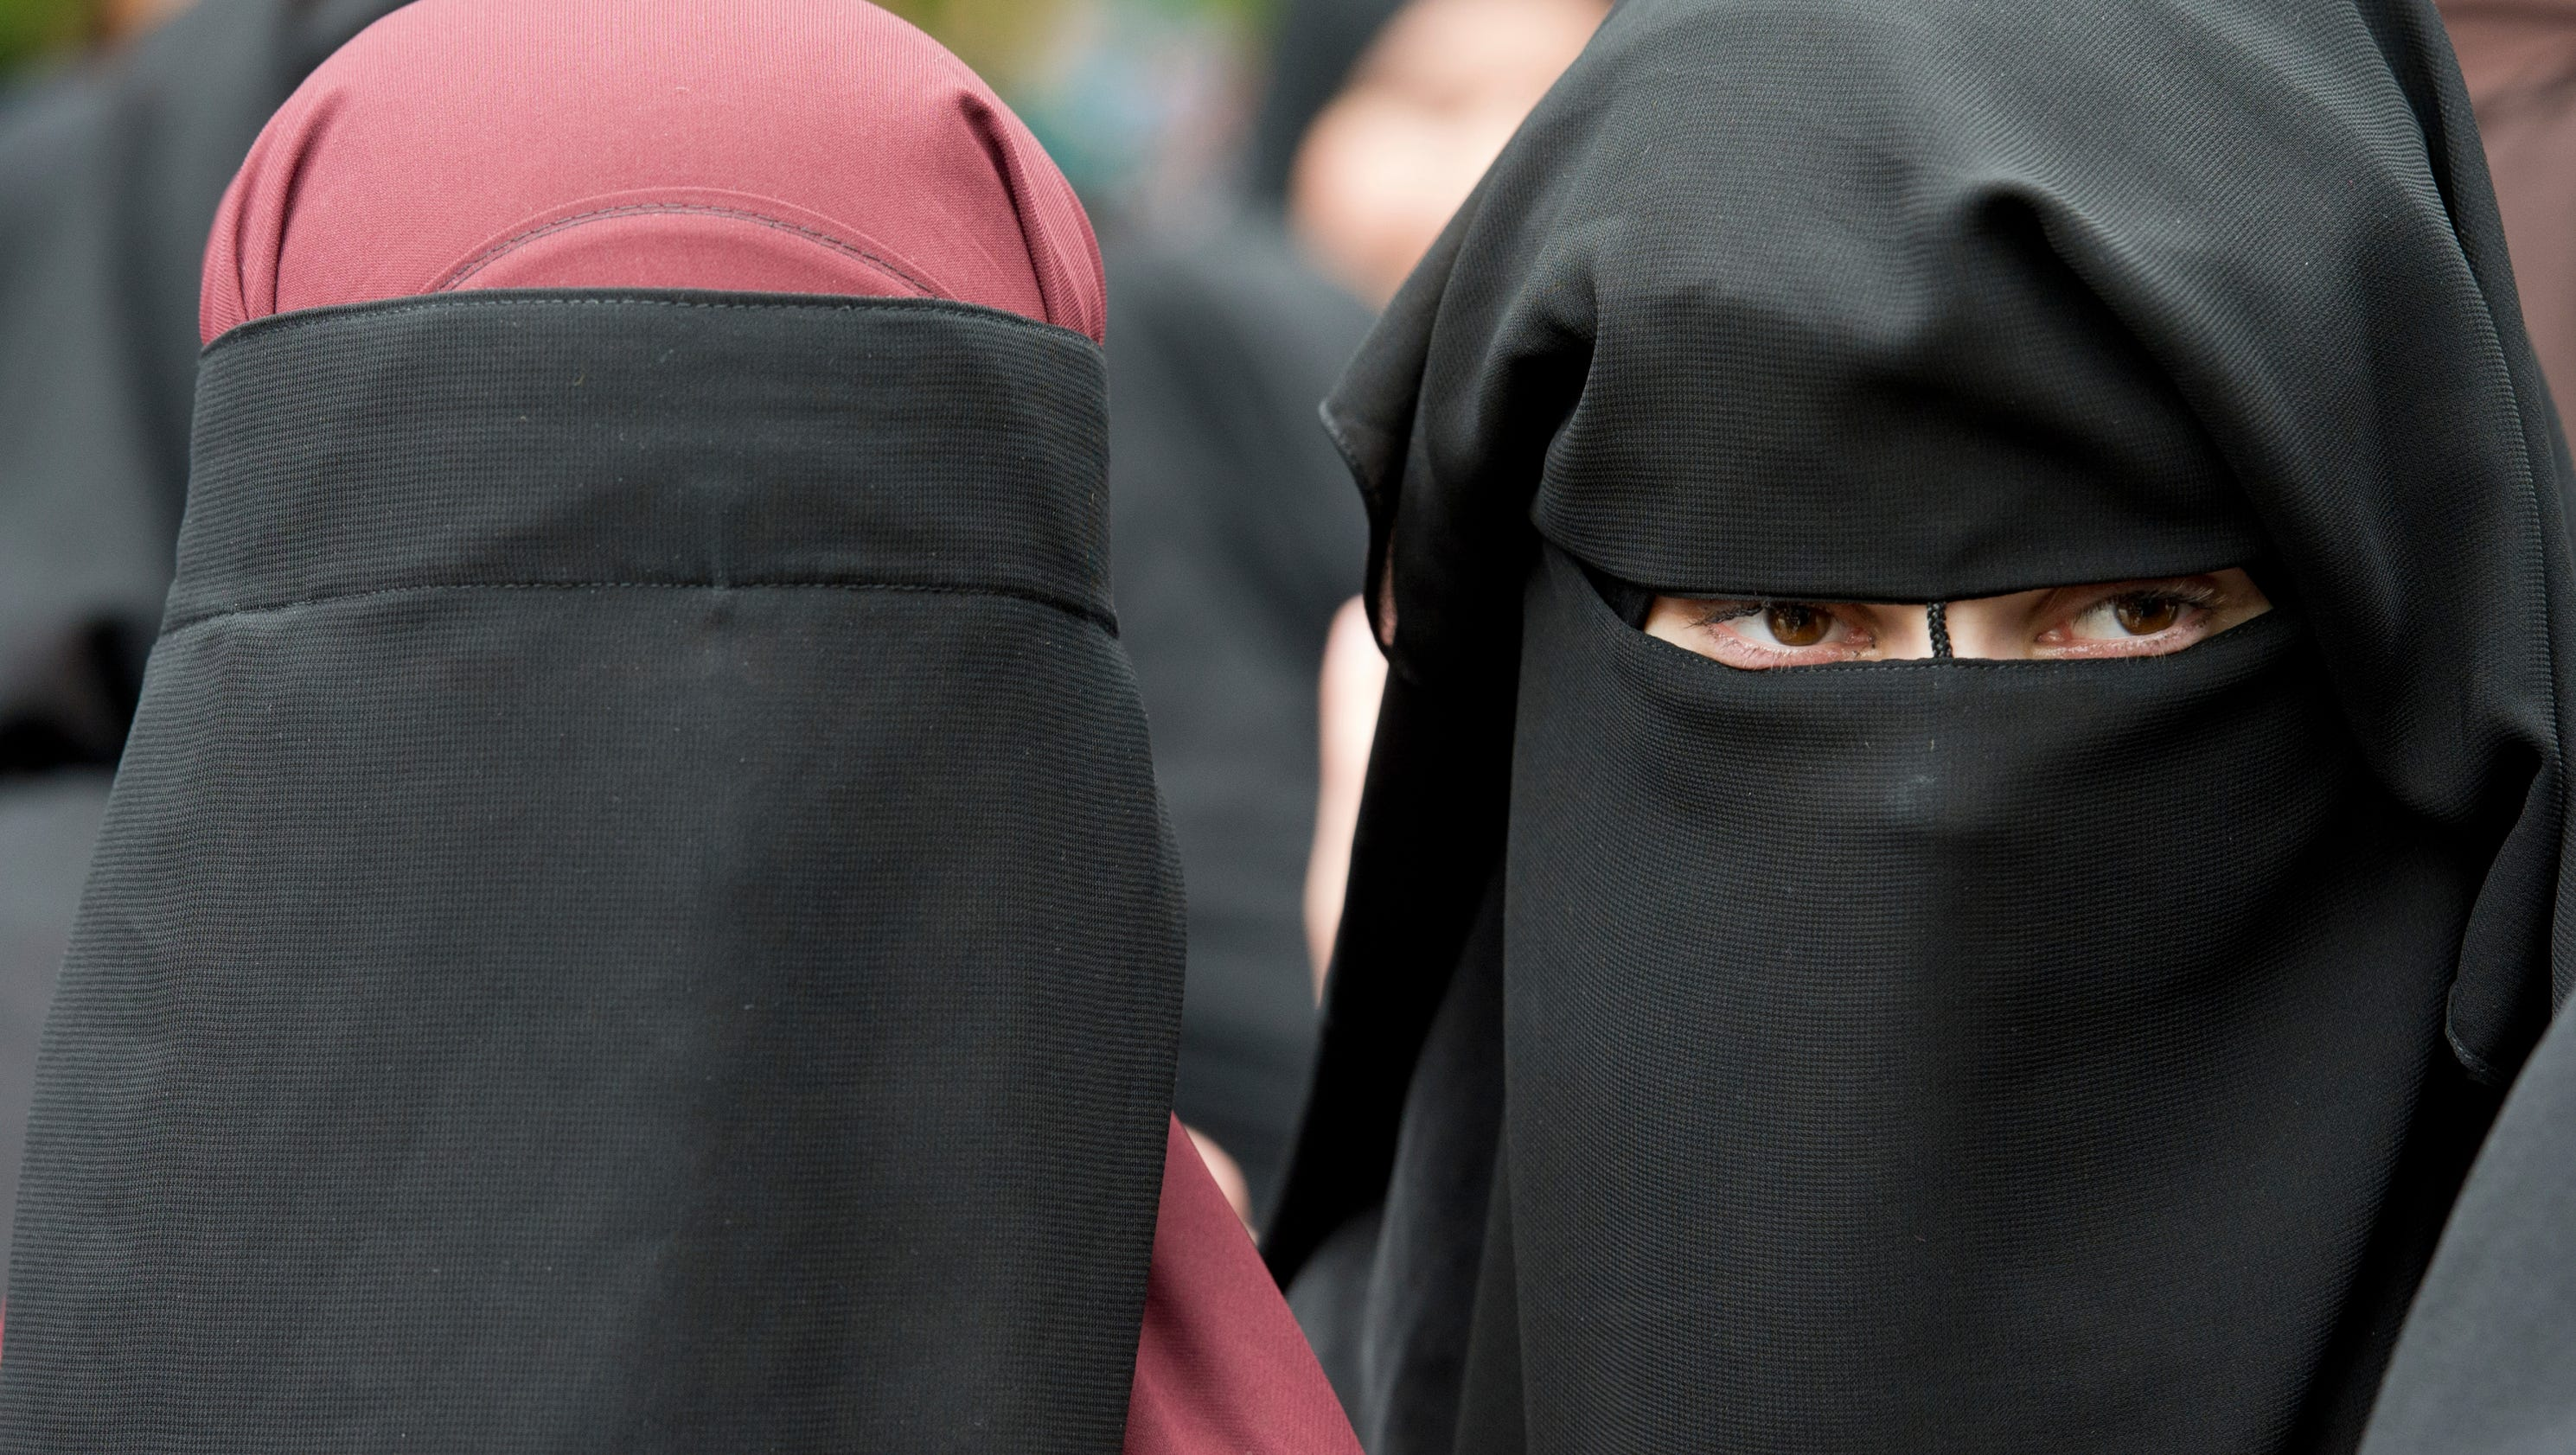 burqa ban Watch video women wearing a burqa in switzerland will now be fined a whopping £6,500 after an overwhelming number voted to bring in ban.